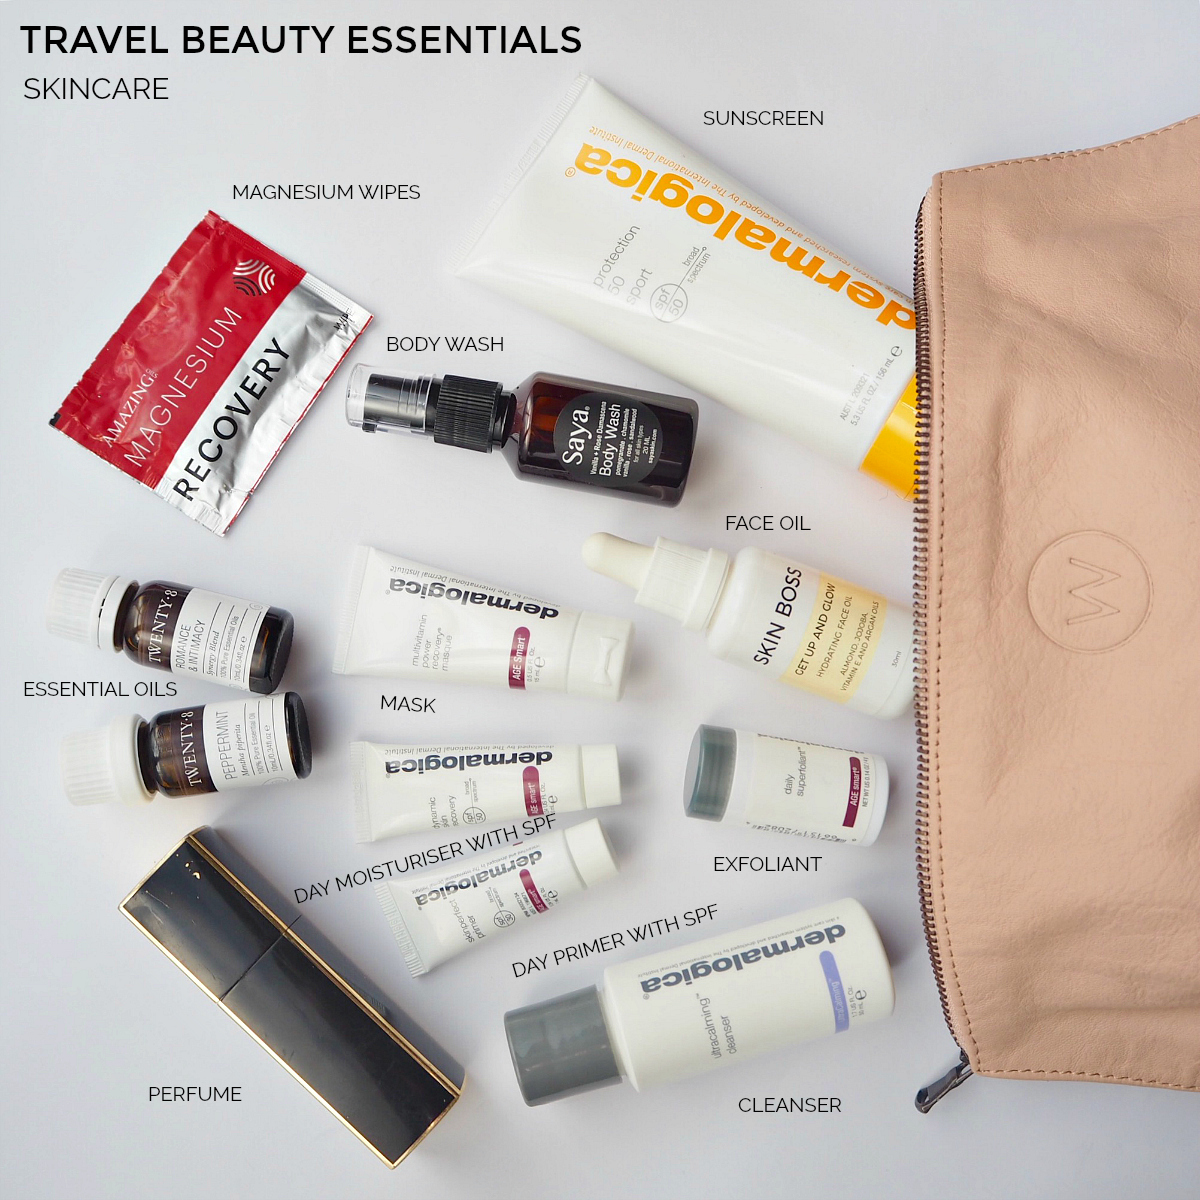 Travel beauty essentials - hair care | Styling You